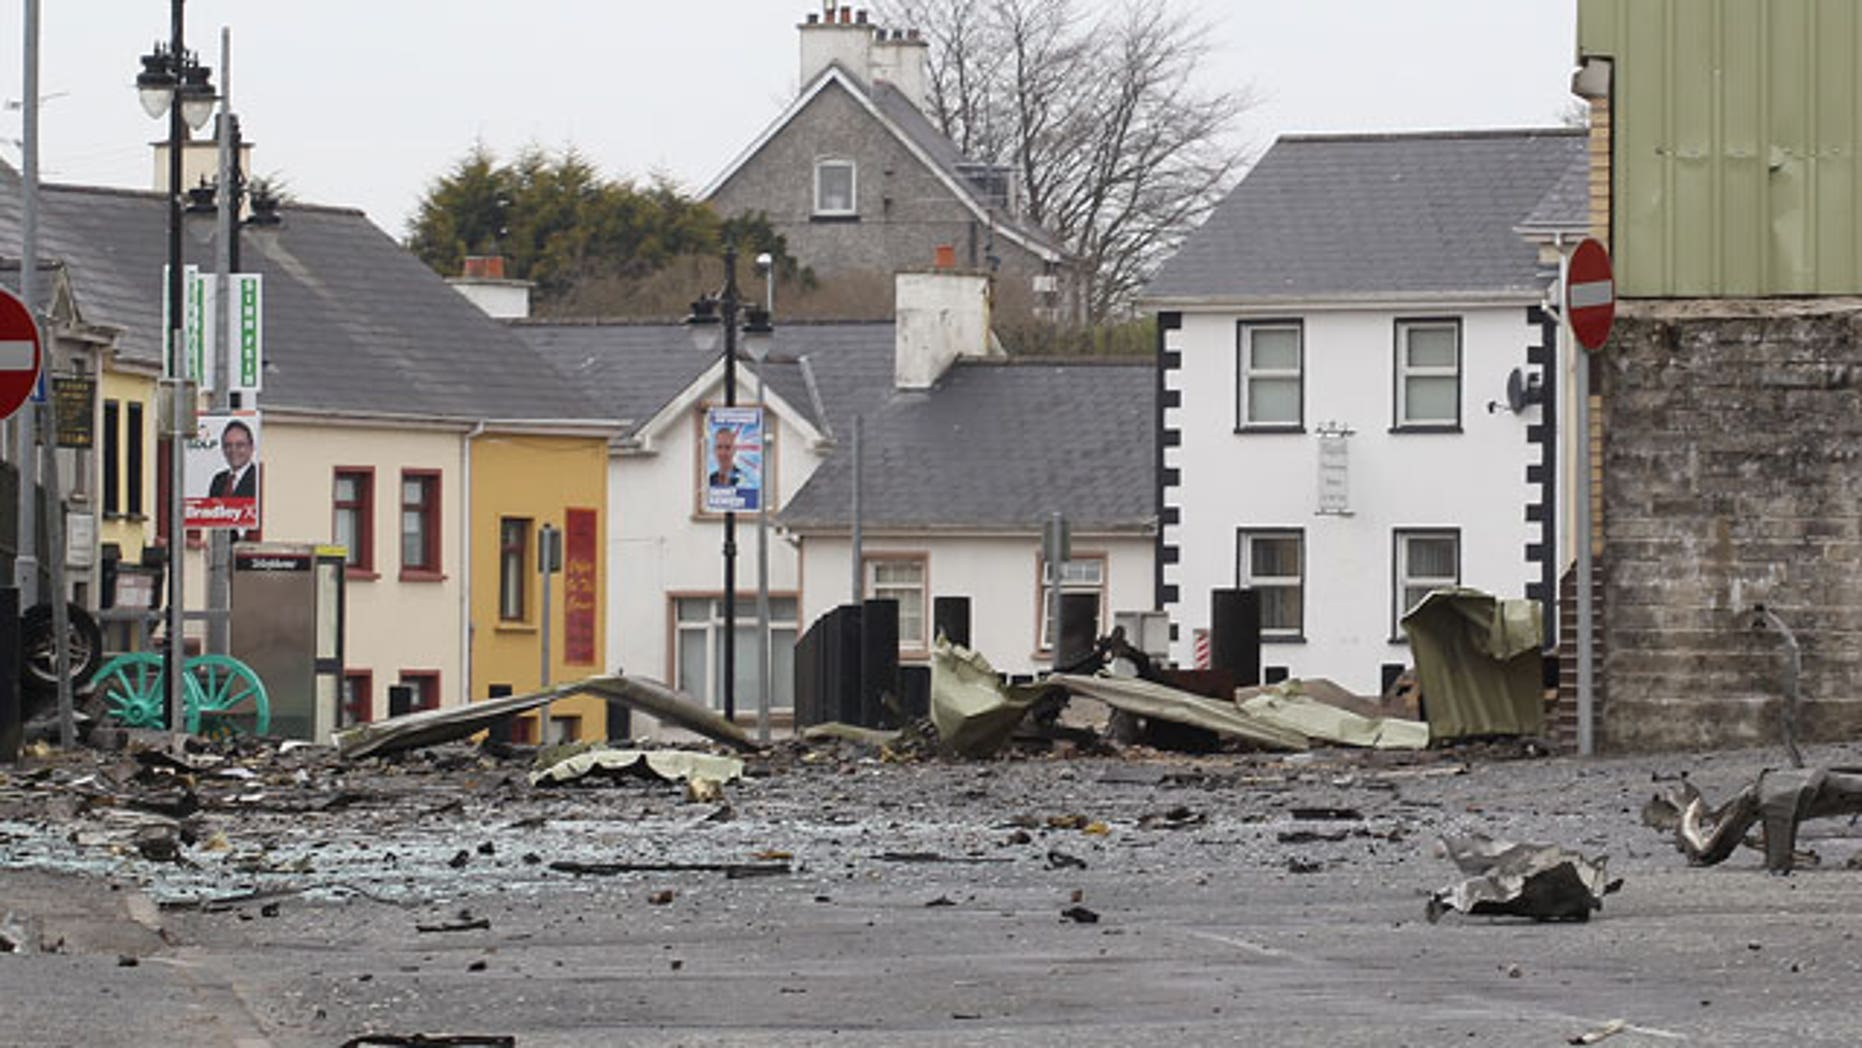 Wreckage lies across the street from car bomb outside Newtownhamilton Police Station, Northern Ireland, Friday, April, 23, 2010. Irish Republican Army dissidents fired gunshots and detonated a car bomb outside a security base in a Northern Ireland border village, injuring three people, police said Friday. The attack outside the heavily fortified Newtownhamilton police station is the third in the British territory this year by splinter IRA groups. They oppose Northern Ireland's peace process and the Catholic-Protestant government it forged.